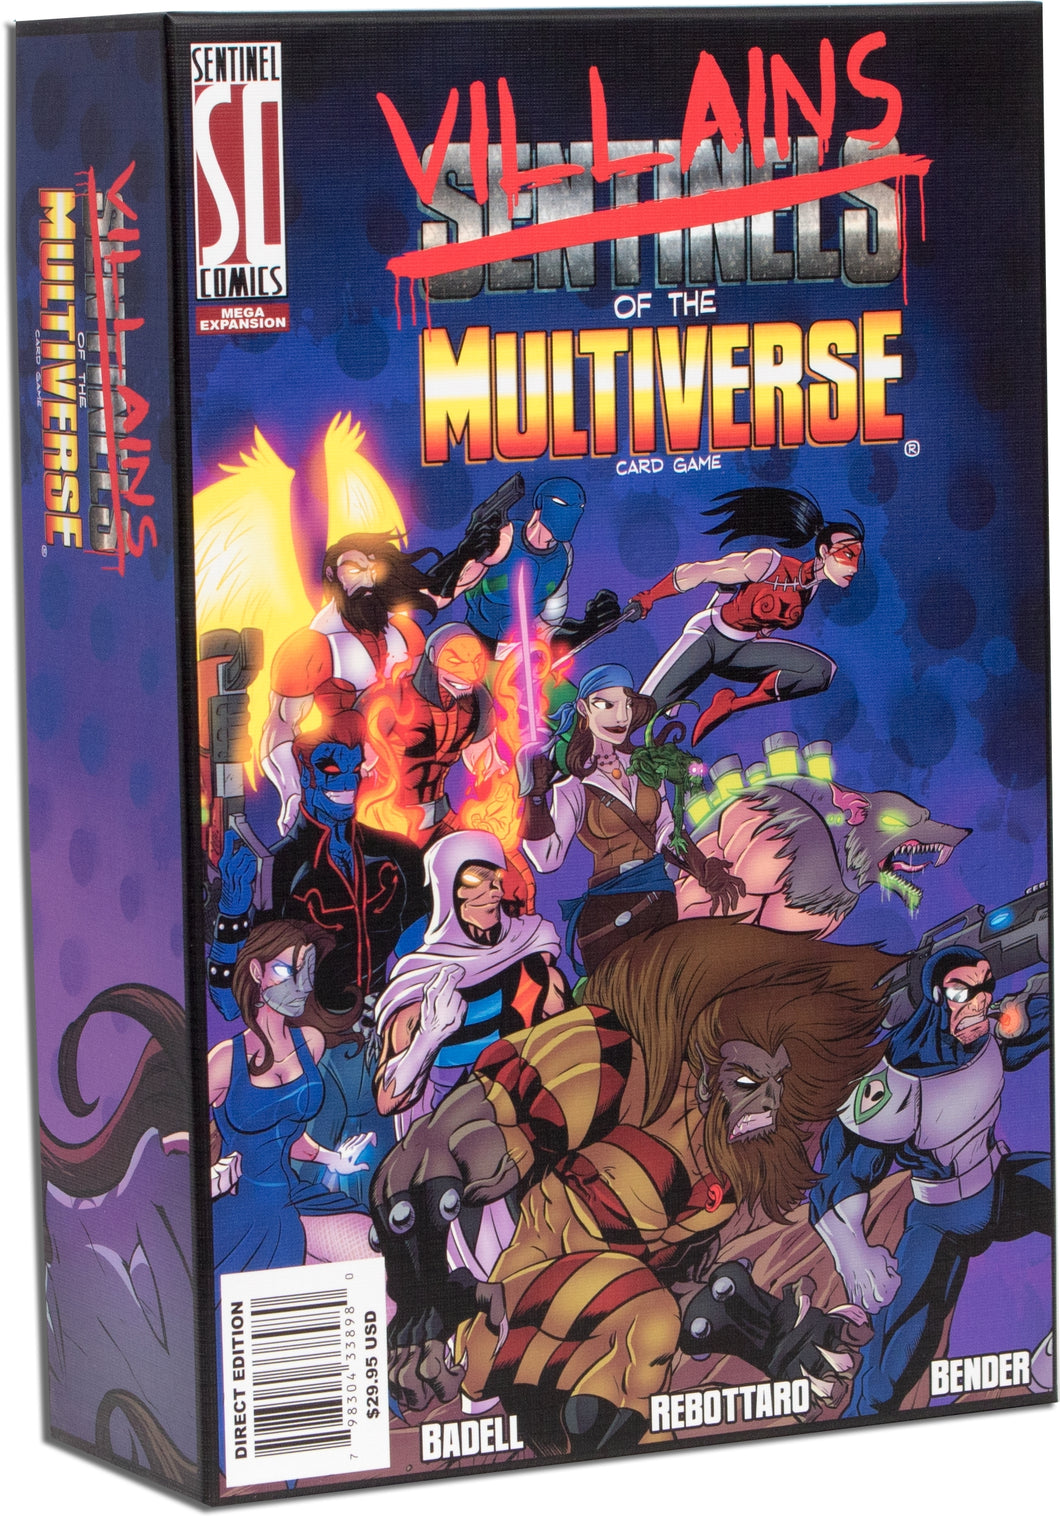 Sentinels of the Multiverse: Villains of the Multiverse Mega Expansion